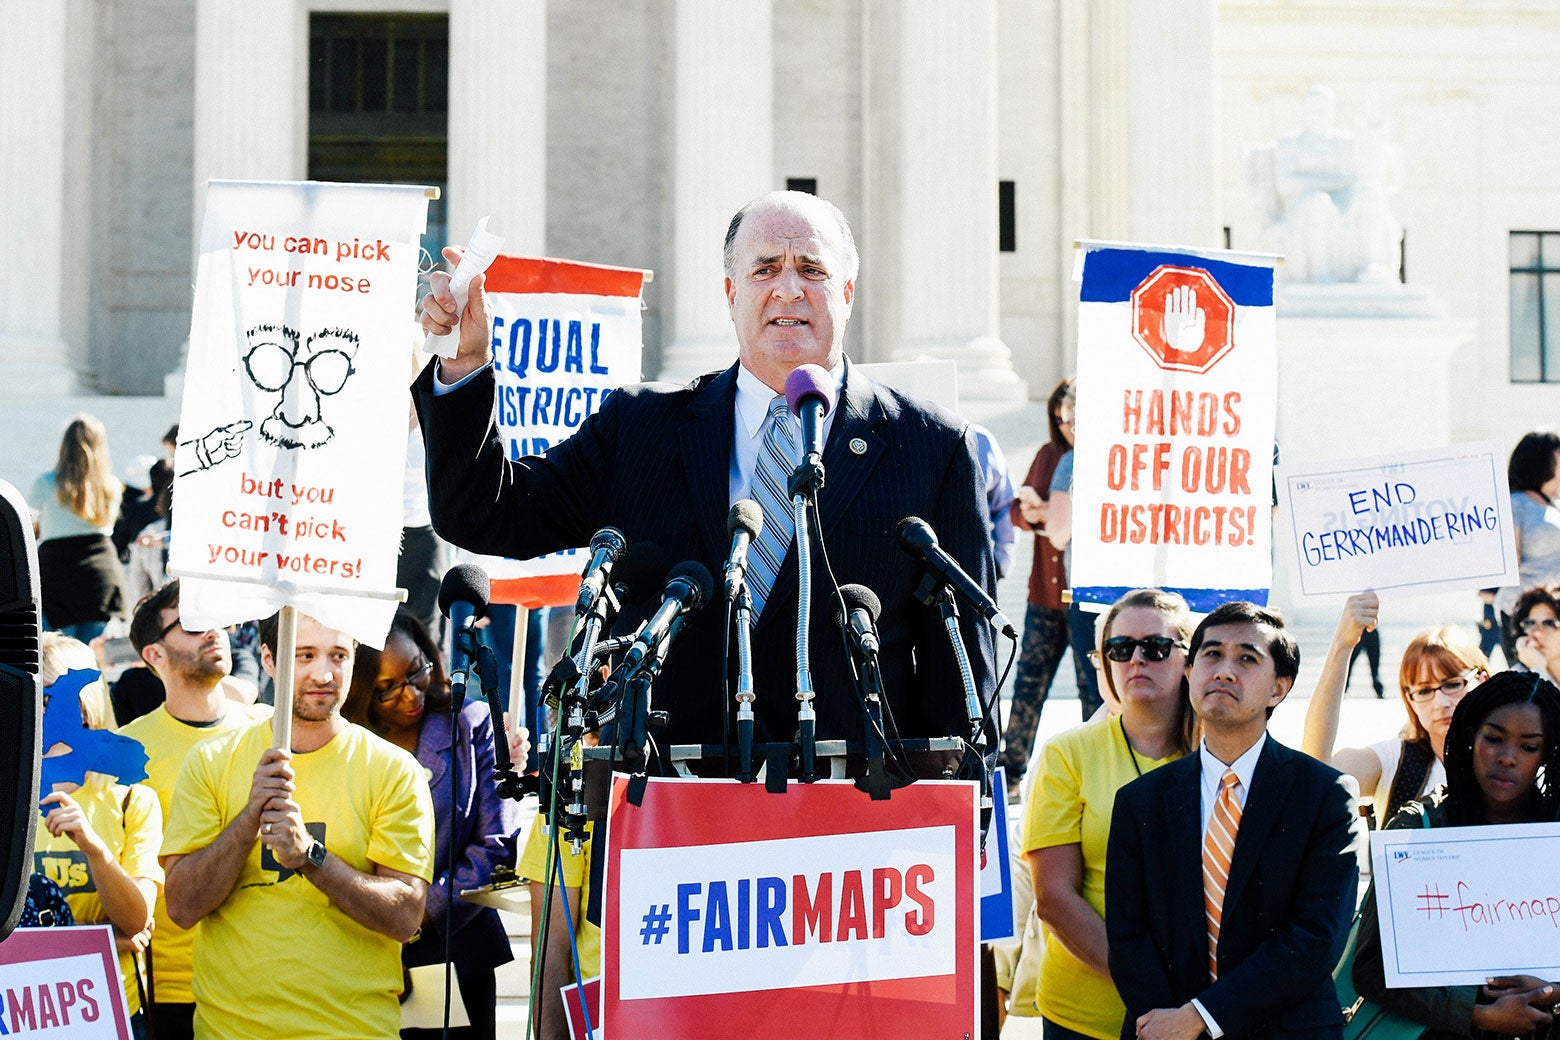 Dan Kildee at a podium that says #FairMaps.